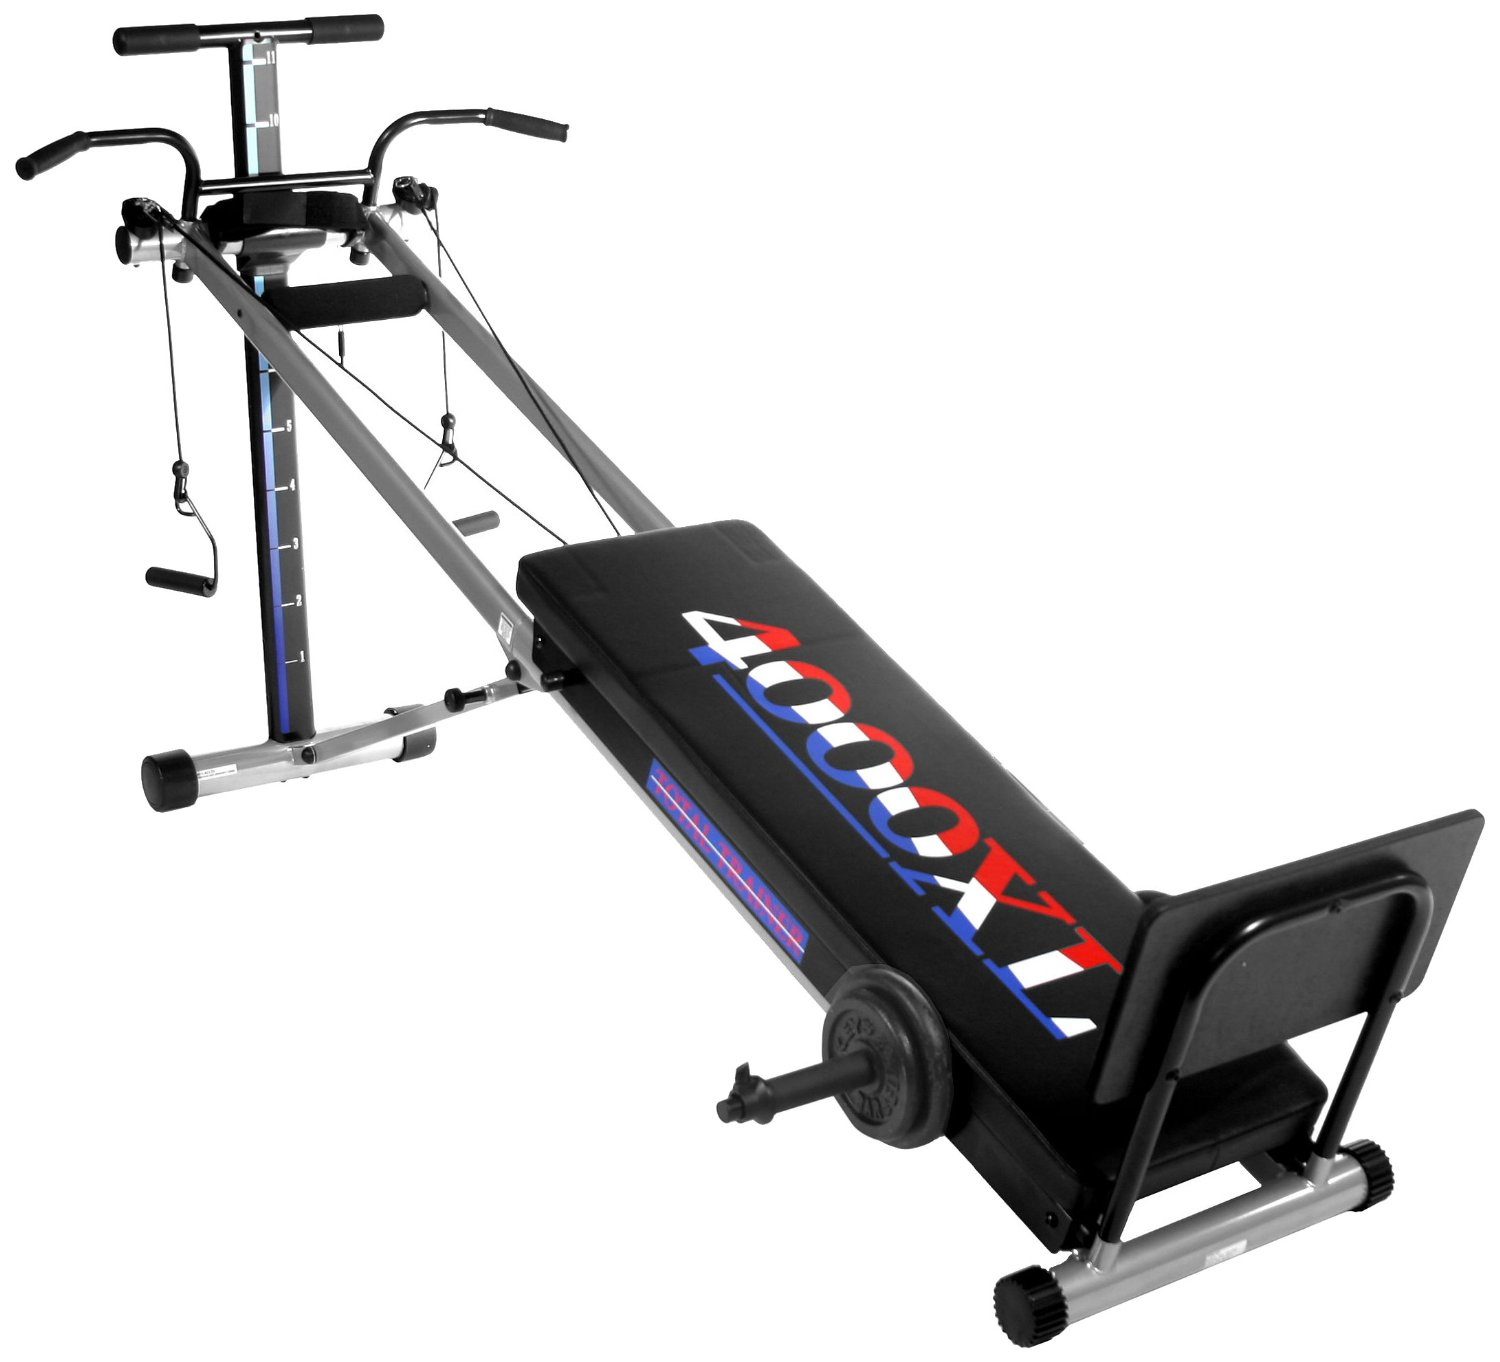 Top 10 Total Gym Reviews — Your Best Buying Guide in 2020